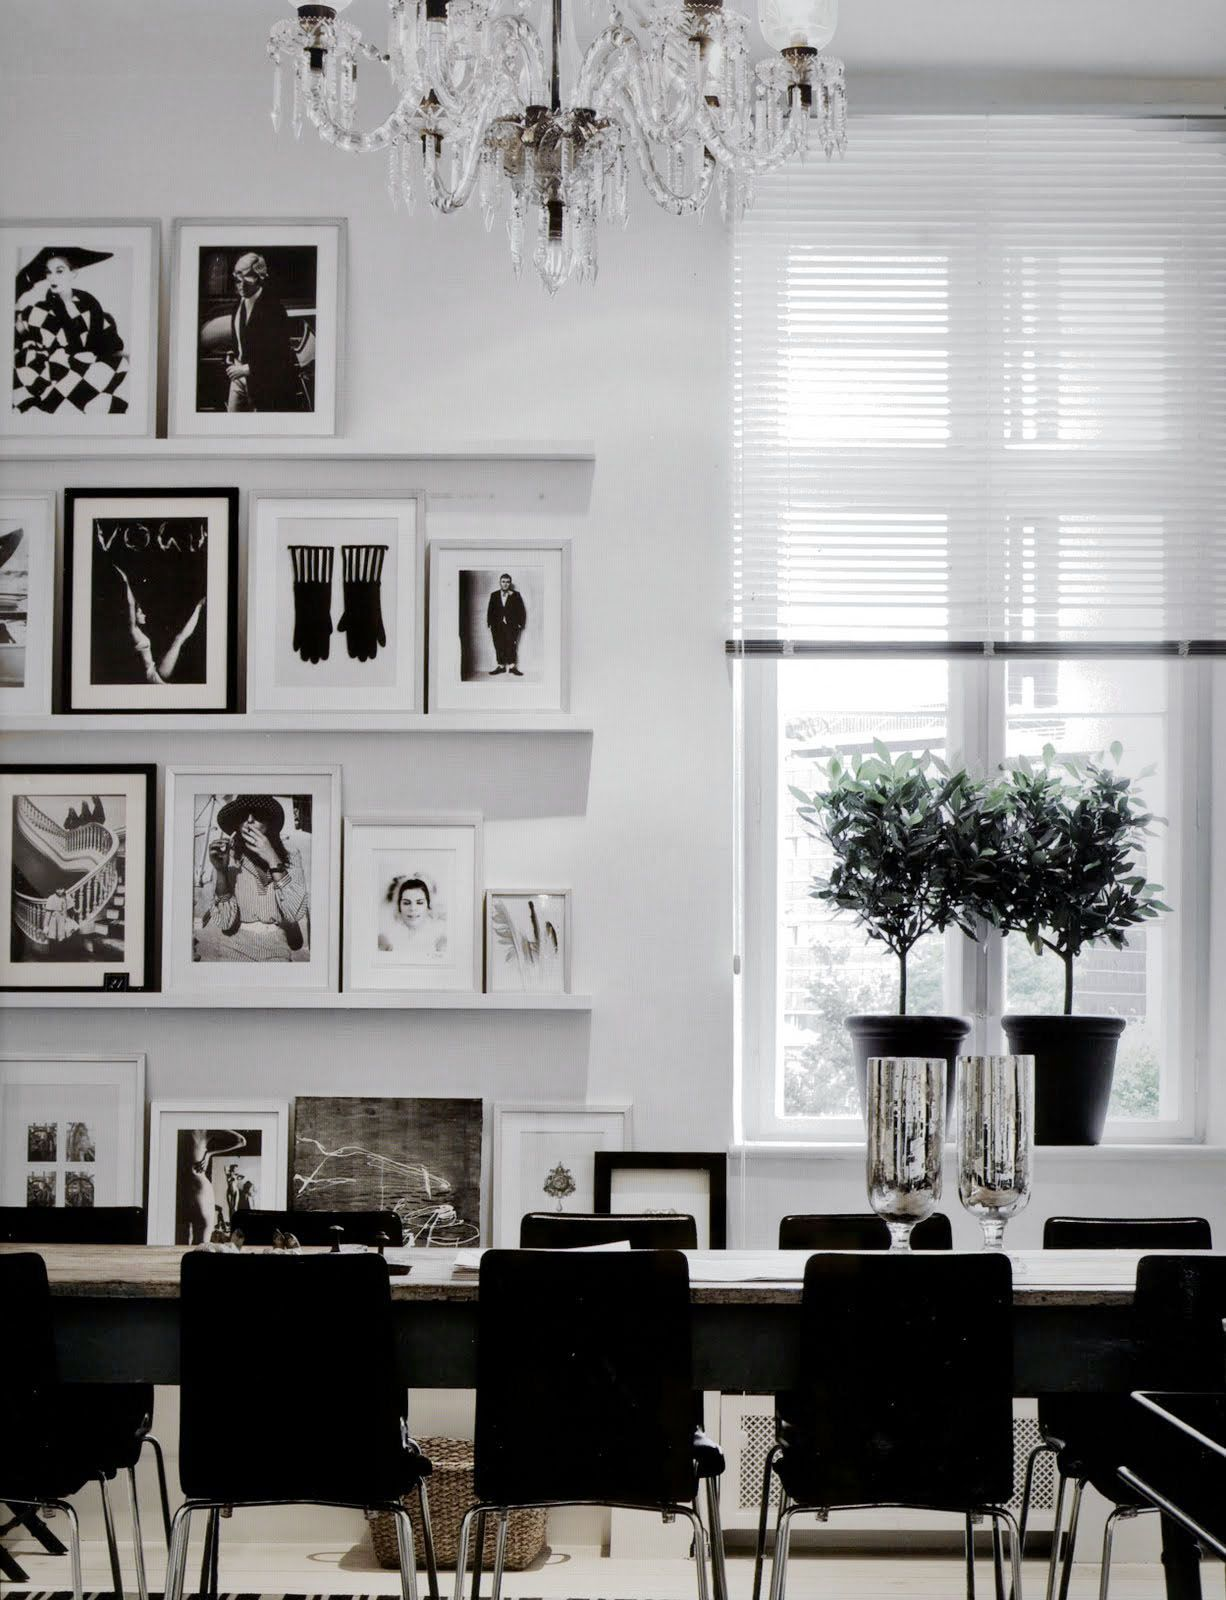 Stunning use of picture rails and mix and match frames with black and white photographs